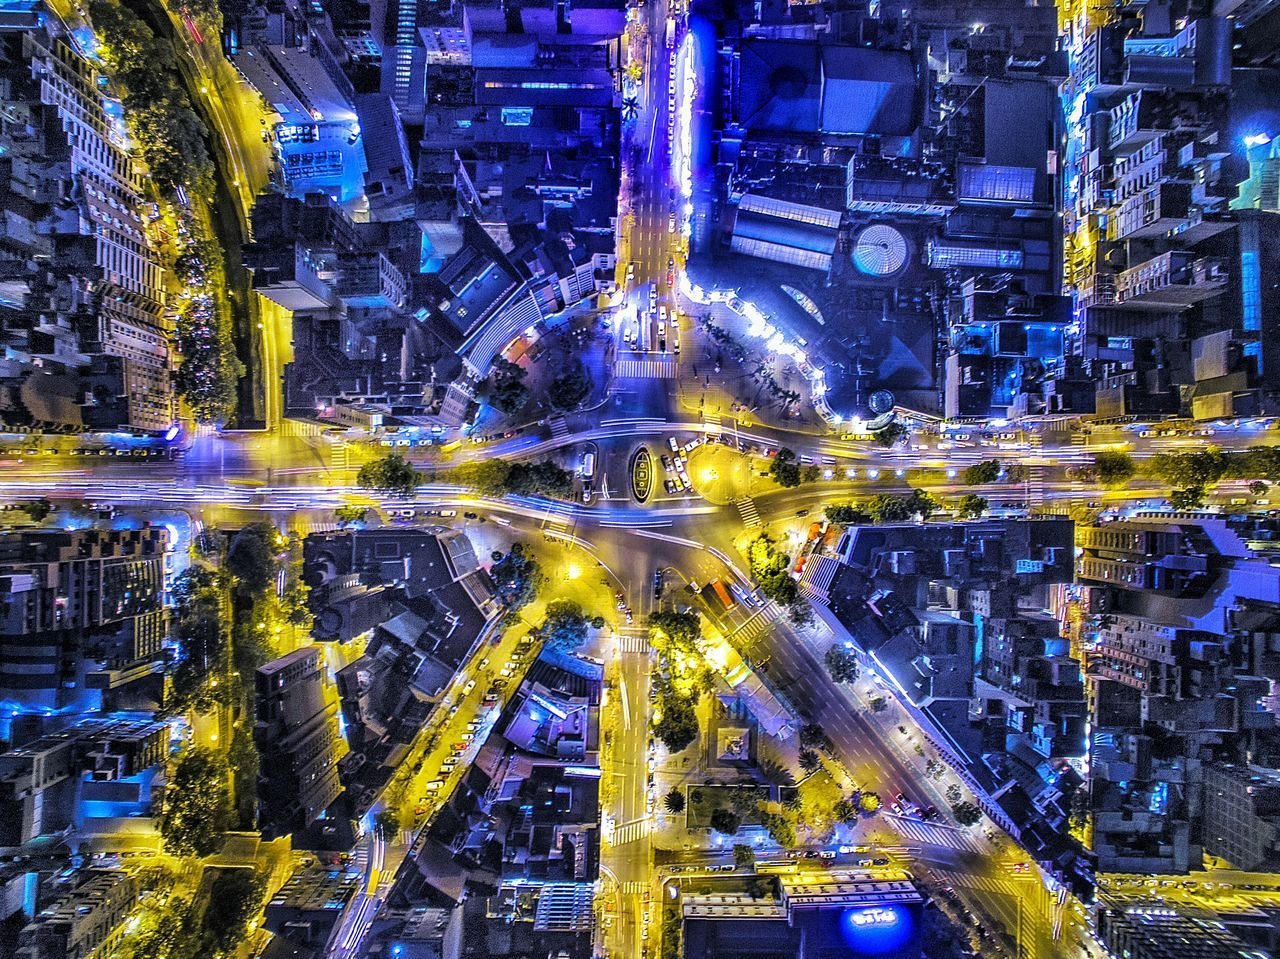 Hanging out Check this out Hello world Relaxing worldwide_shot enjoying life argentina Córdoba Lights photooftheday photography The Journey Is The Destination phtographylovers dronegear Showcase July art Aerials City Drone dronephotography Hidden Gems colour of life